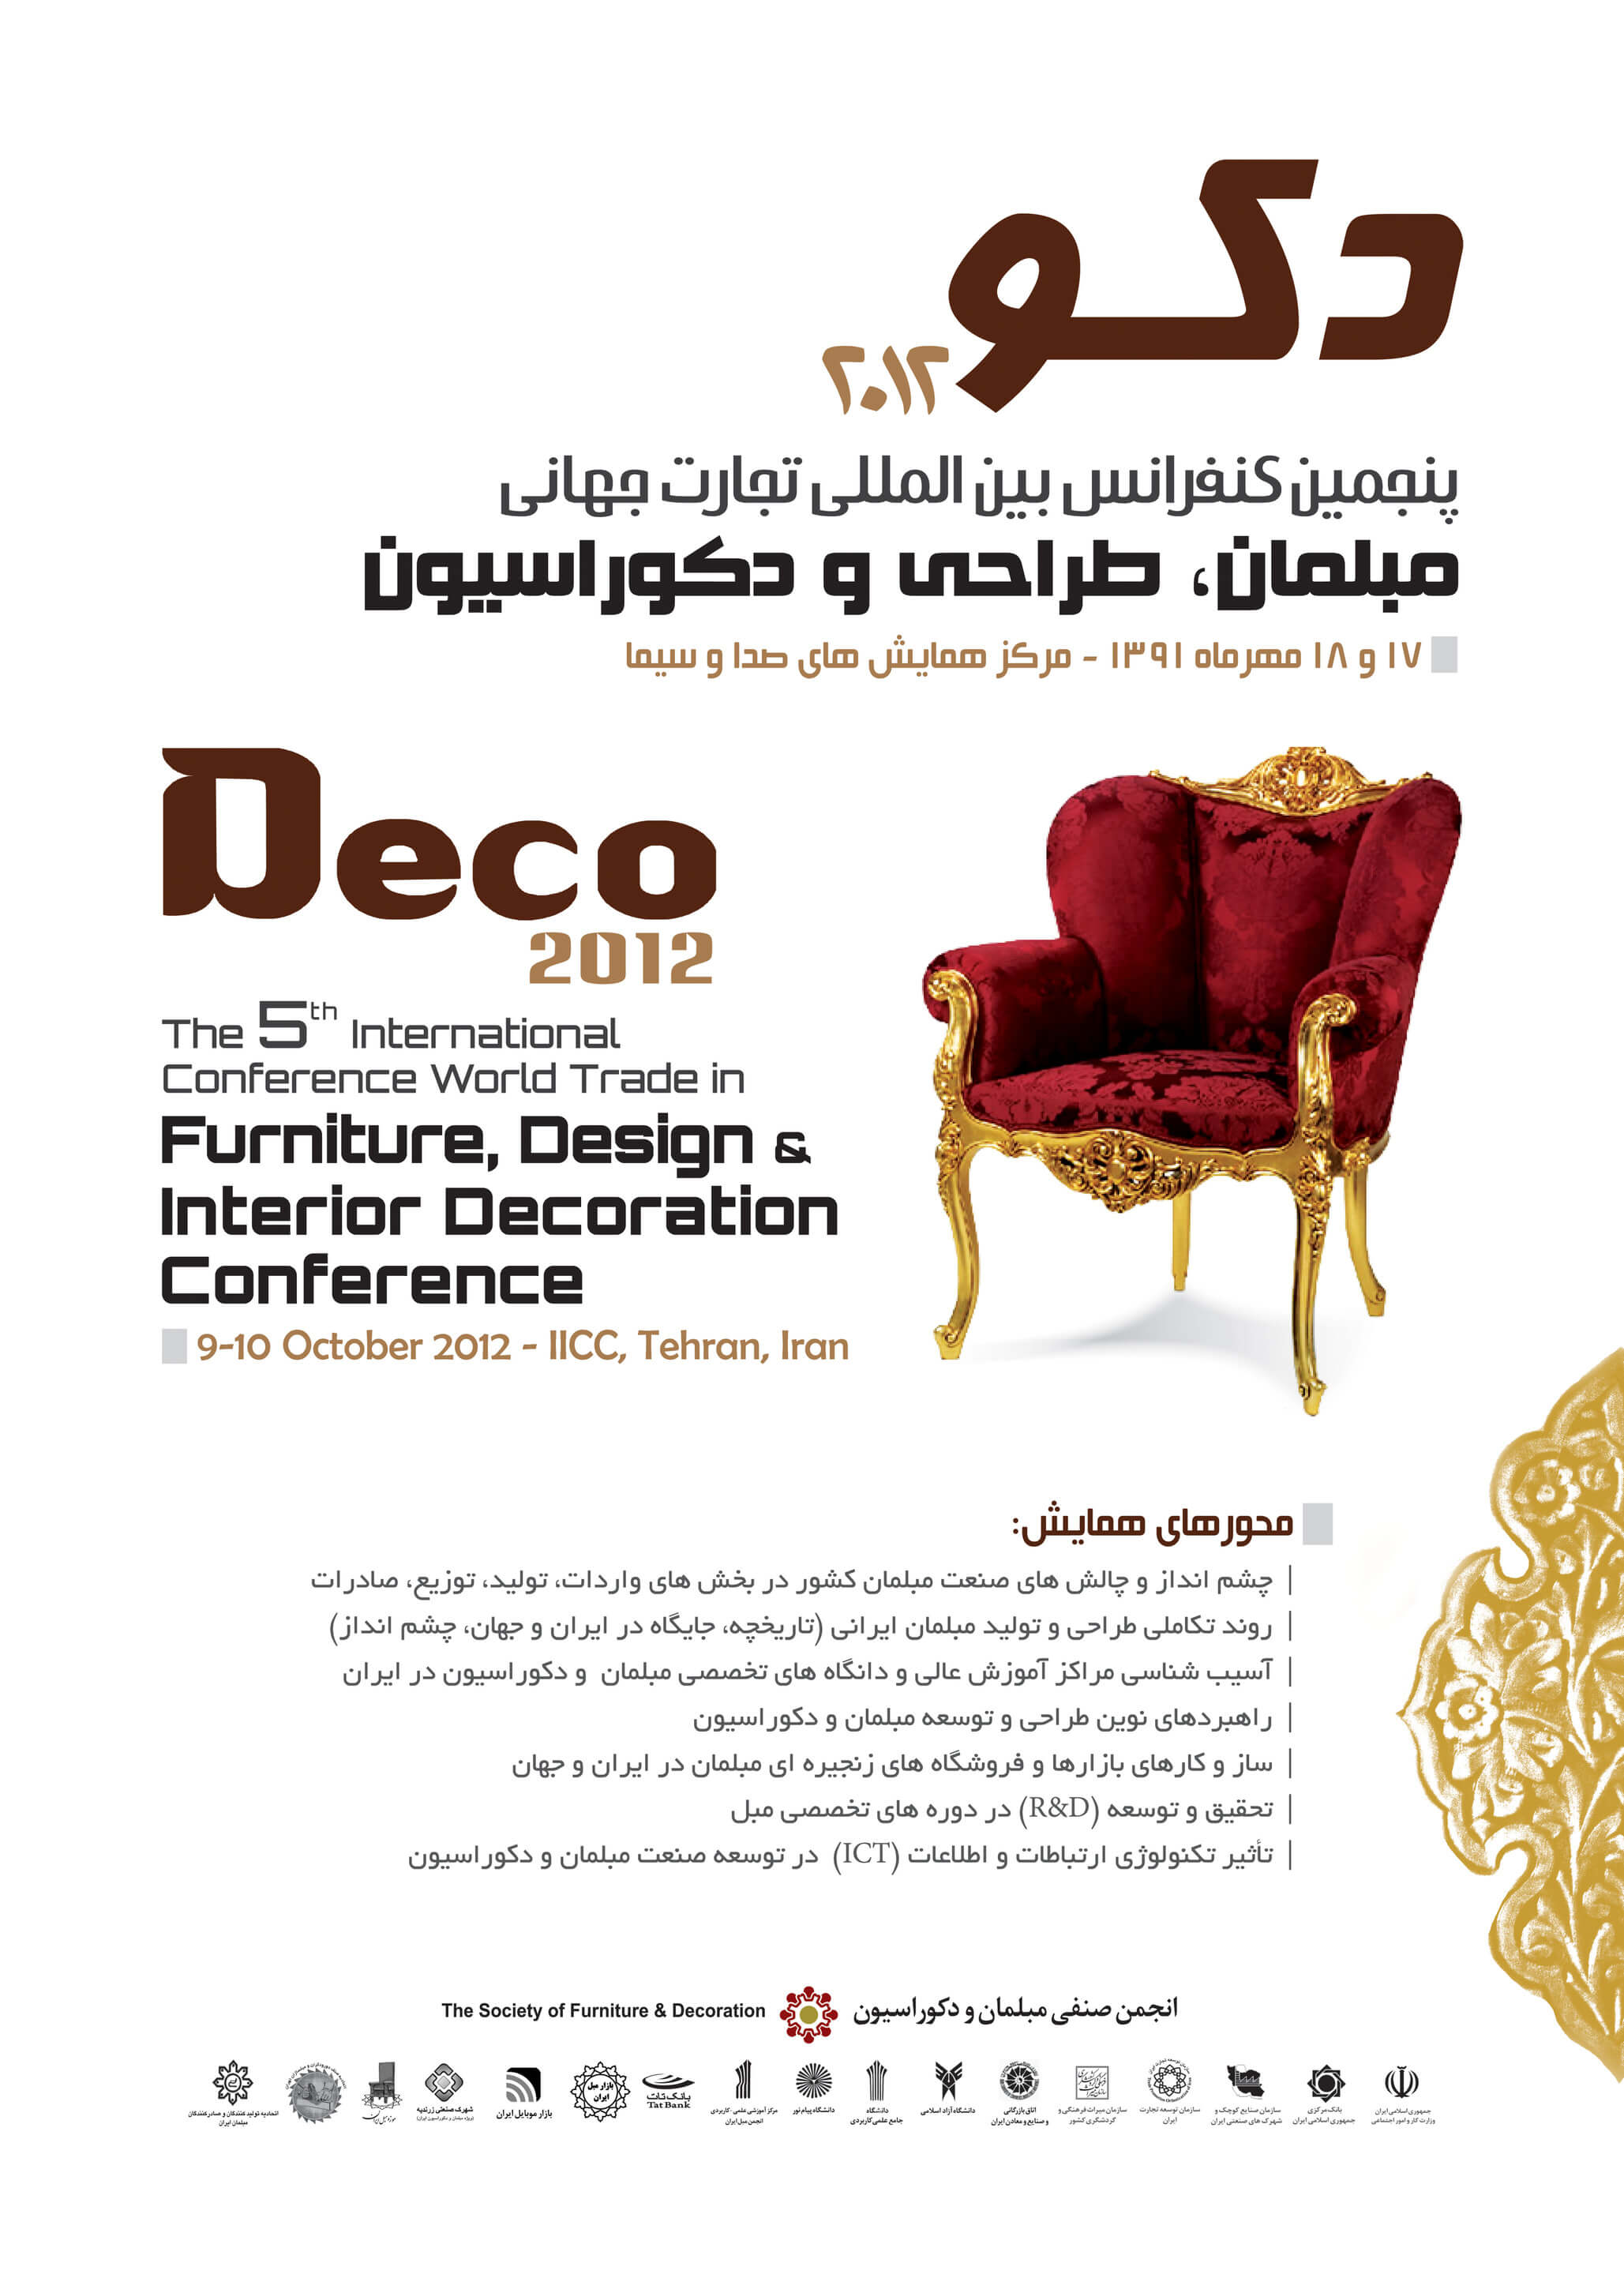 Deco Furniture, Design & Interior Decoration Conference - Identity and Multimedia Design by Mobin Bahrami — BMDX